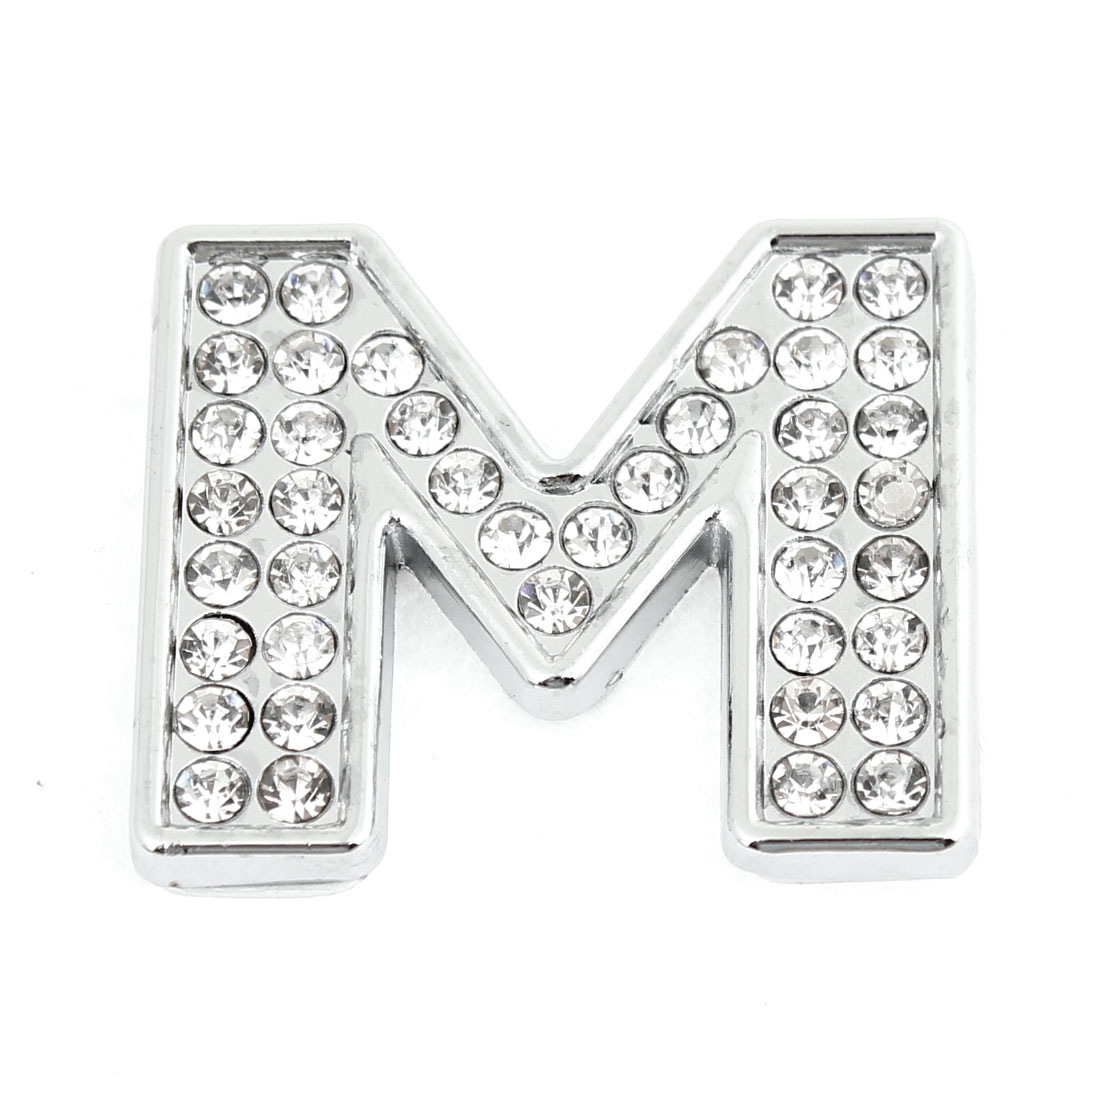 Car Surface Decor Rhinestones Silver Tone Letter M Style Sticky Sticker